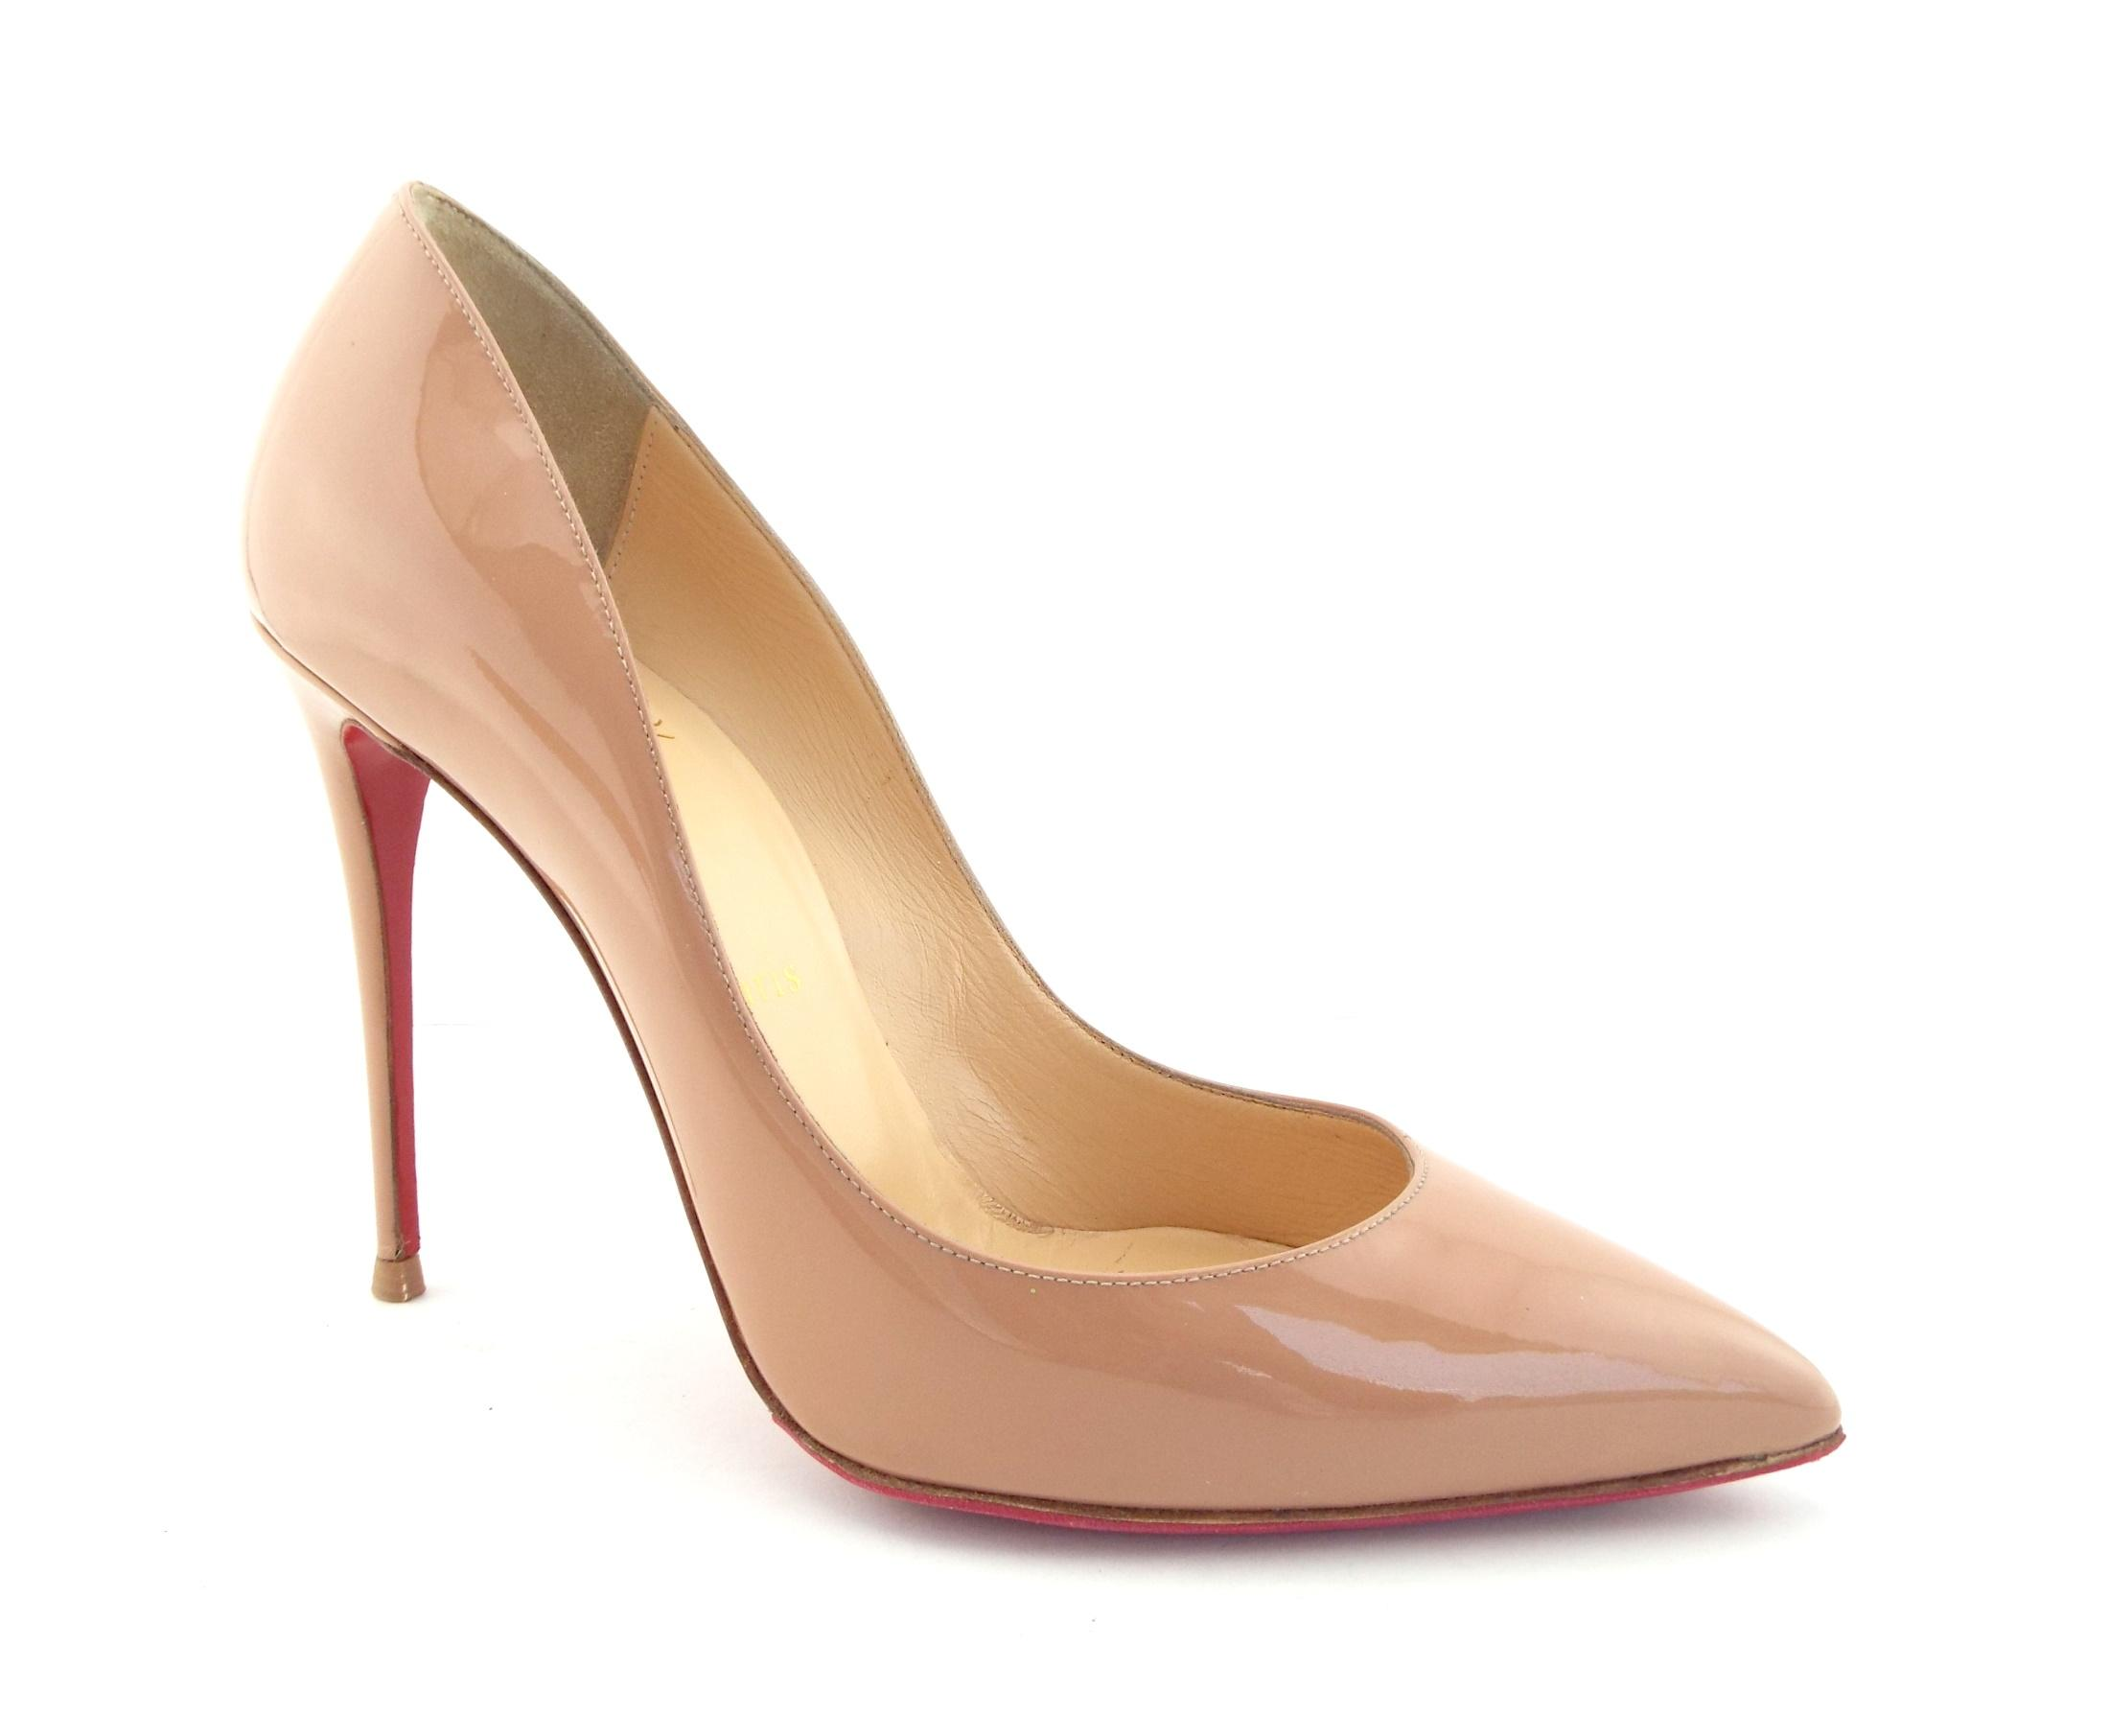 Christian Louboutin Nude Patent Leather Classic Heel Pumps Size EU 38 (Approx. US 8) Regular (M, B)